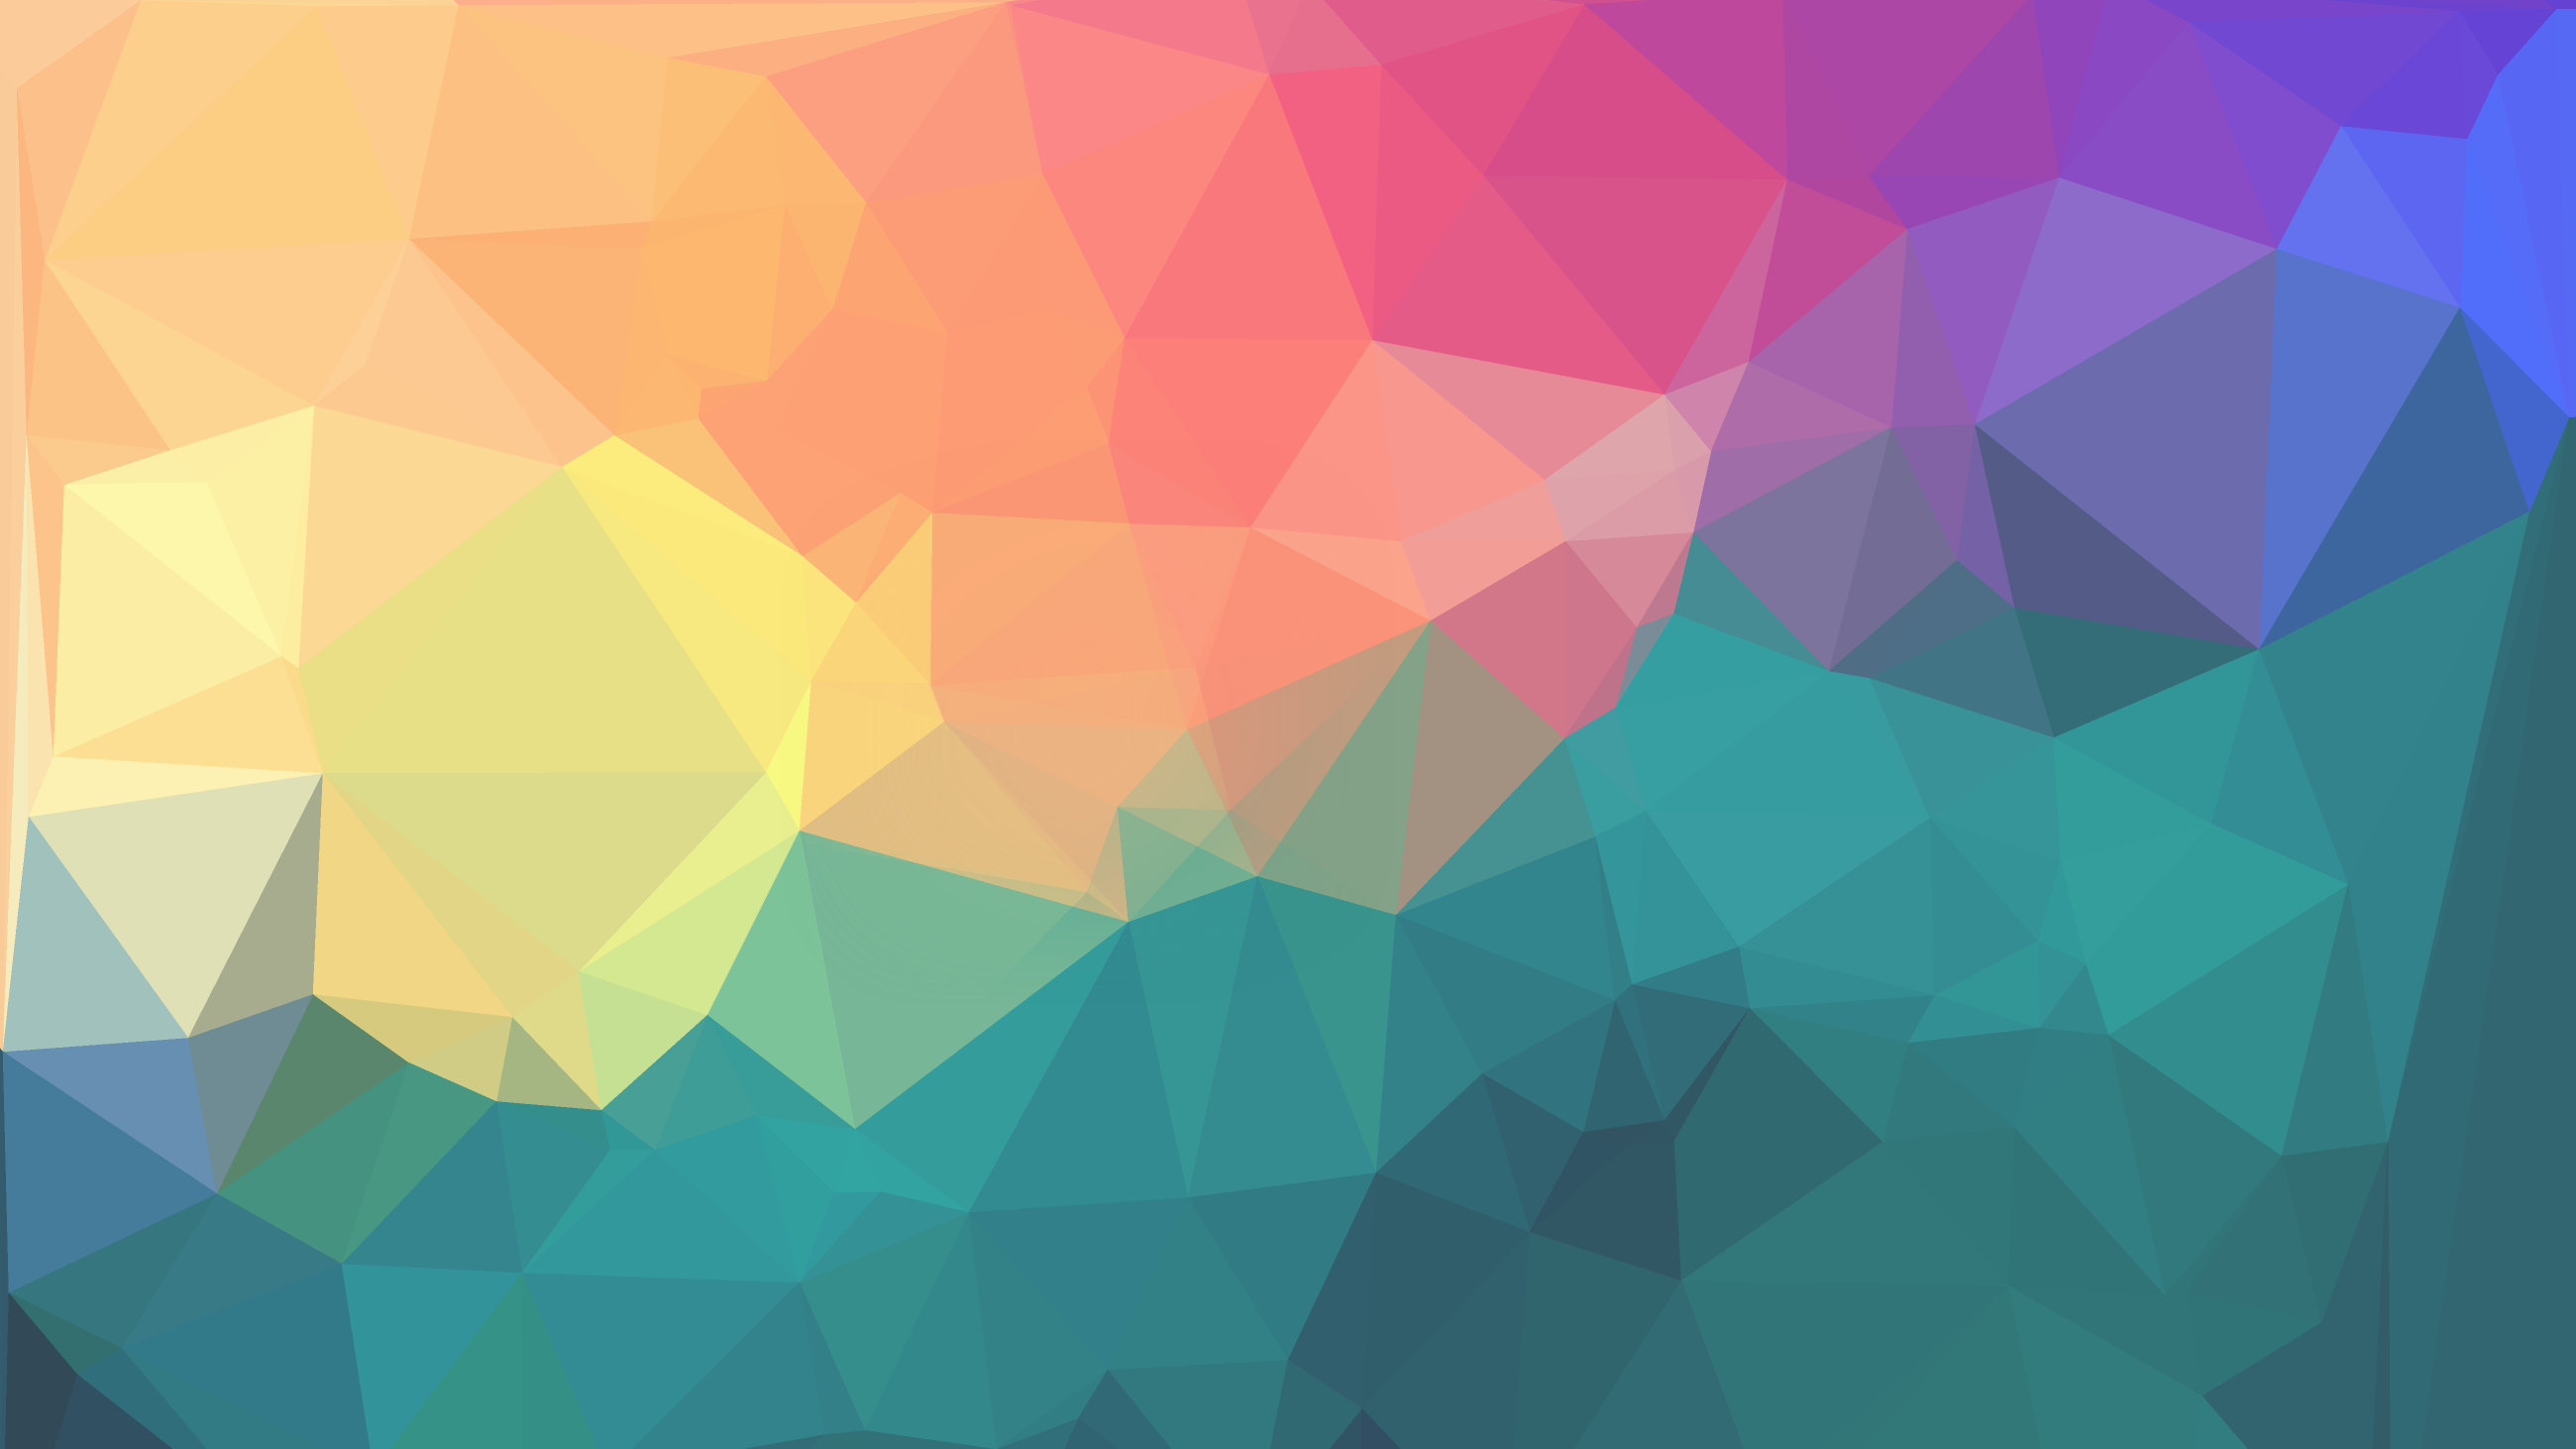 Colorful Food Wallpaper Free Download: Download Colorful Geometric Wallpaper Gallery